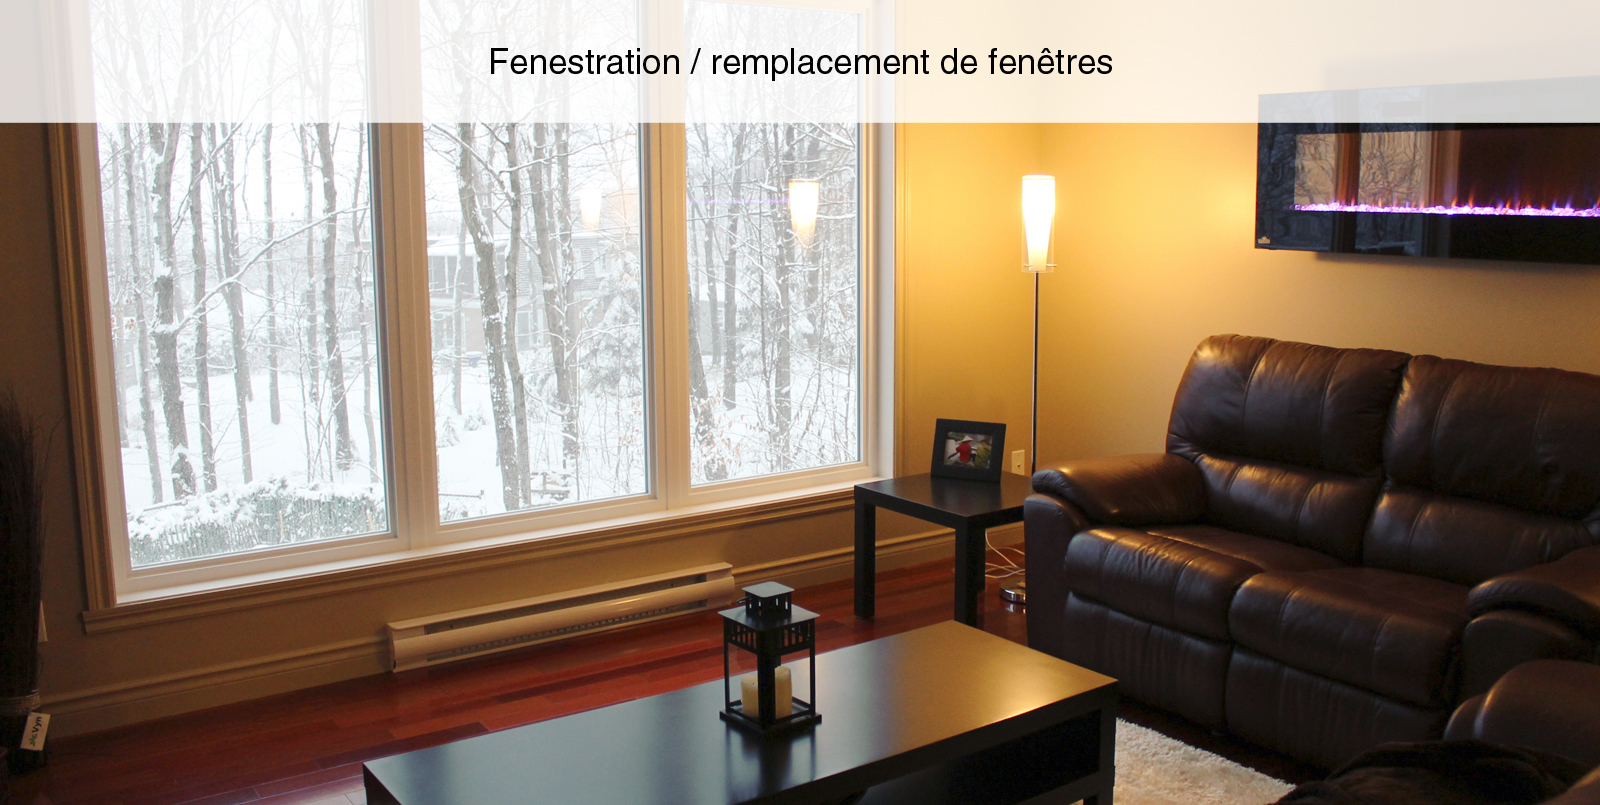 35-1-PANACHE-CONSTRUCTION-RENOVATION-FENESTRATION.jpg